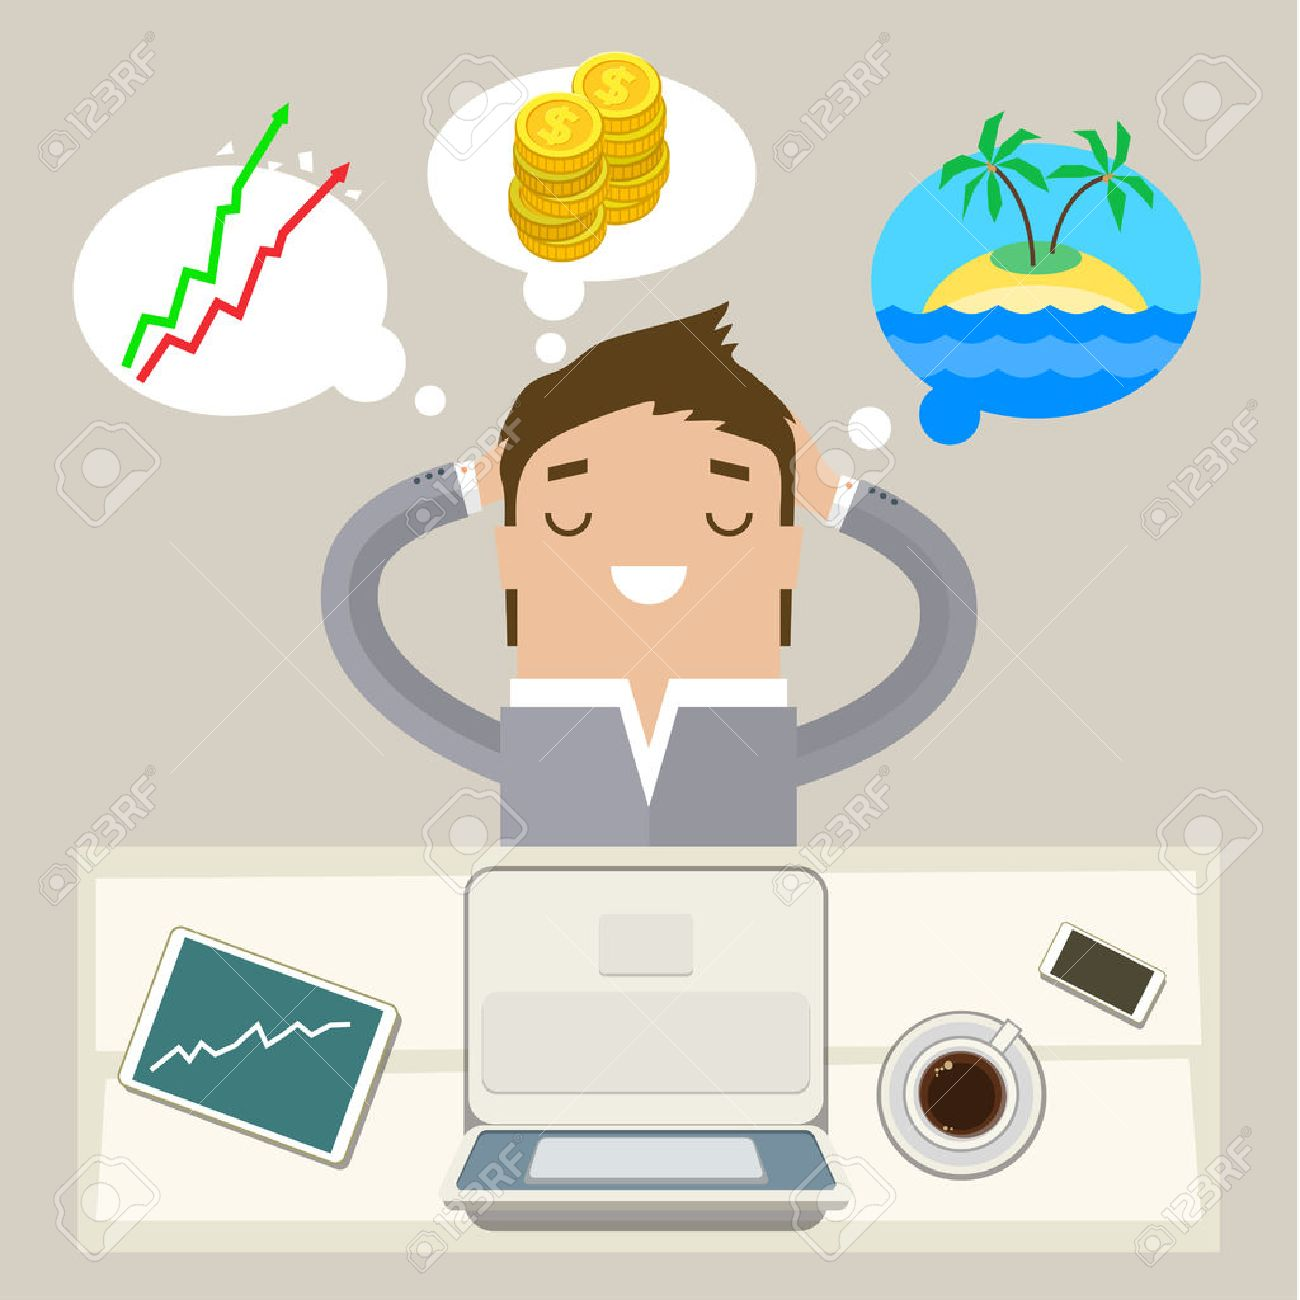 Business man dreaming on a cloud. Concept of big dreams - 44463180